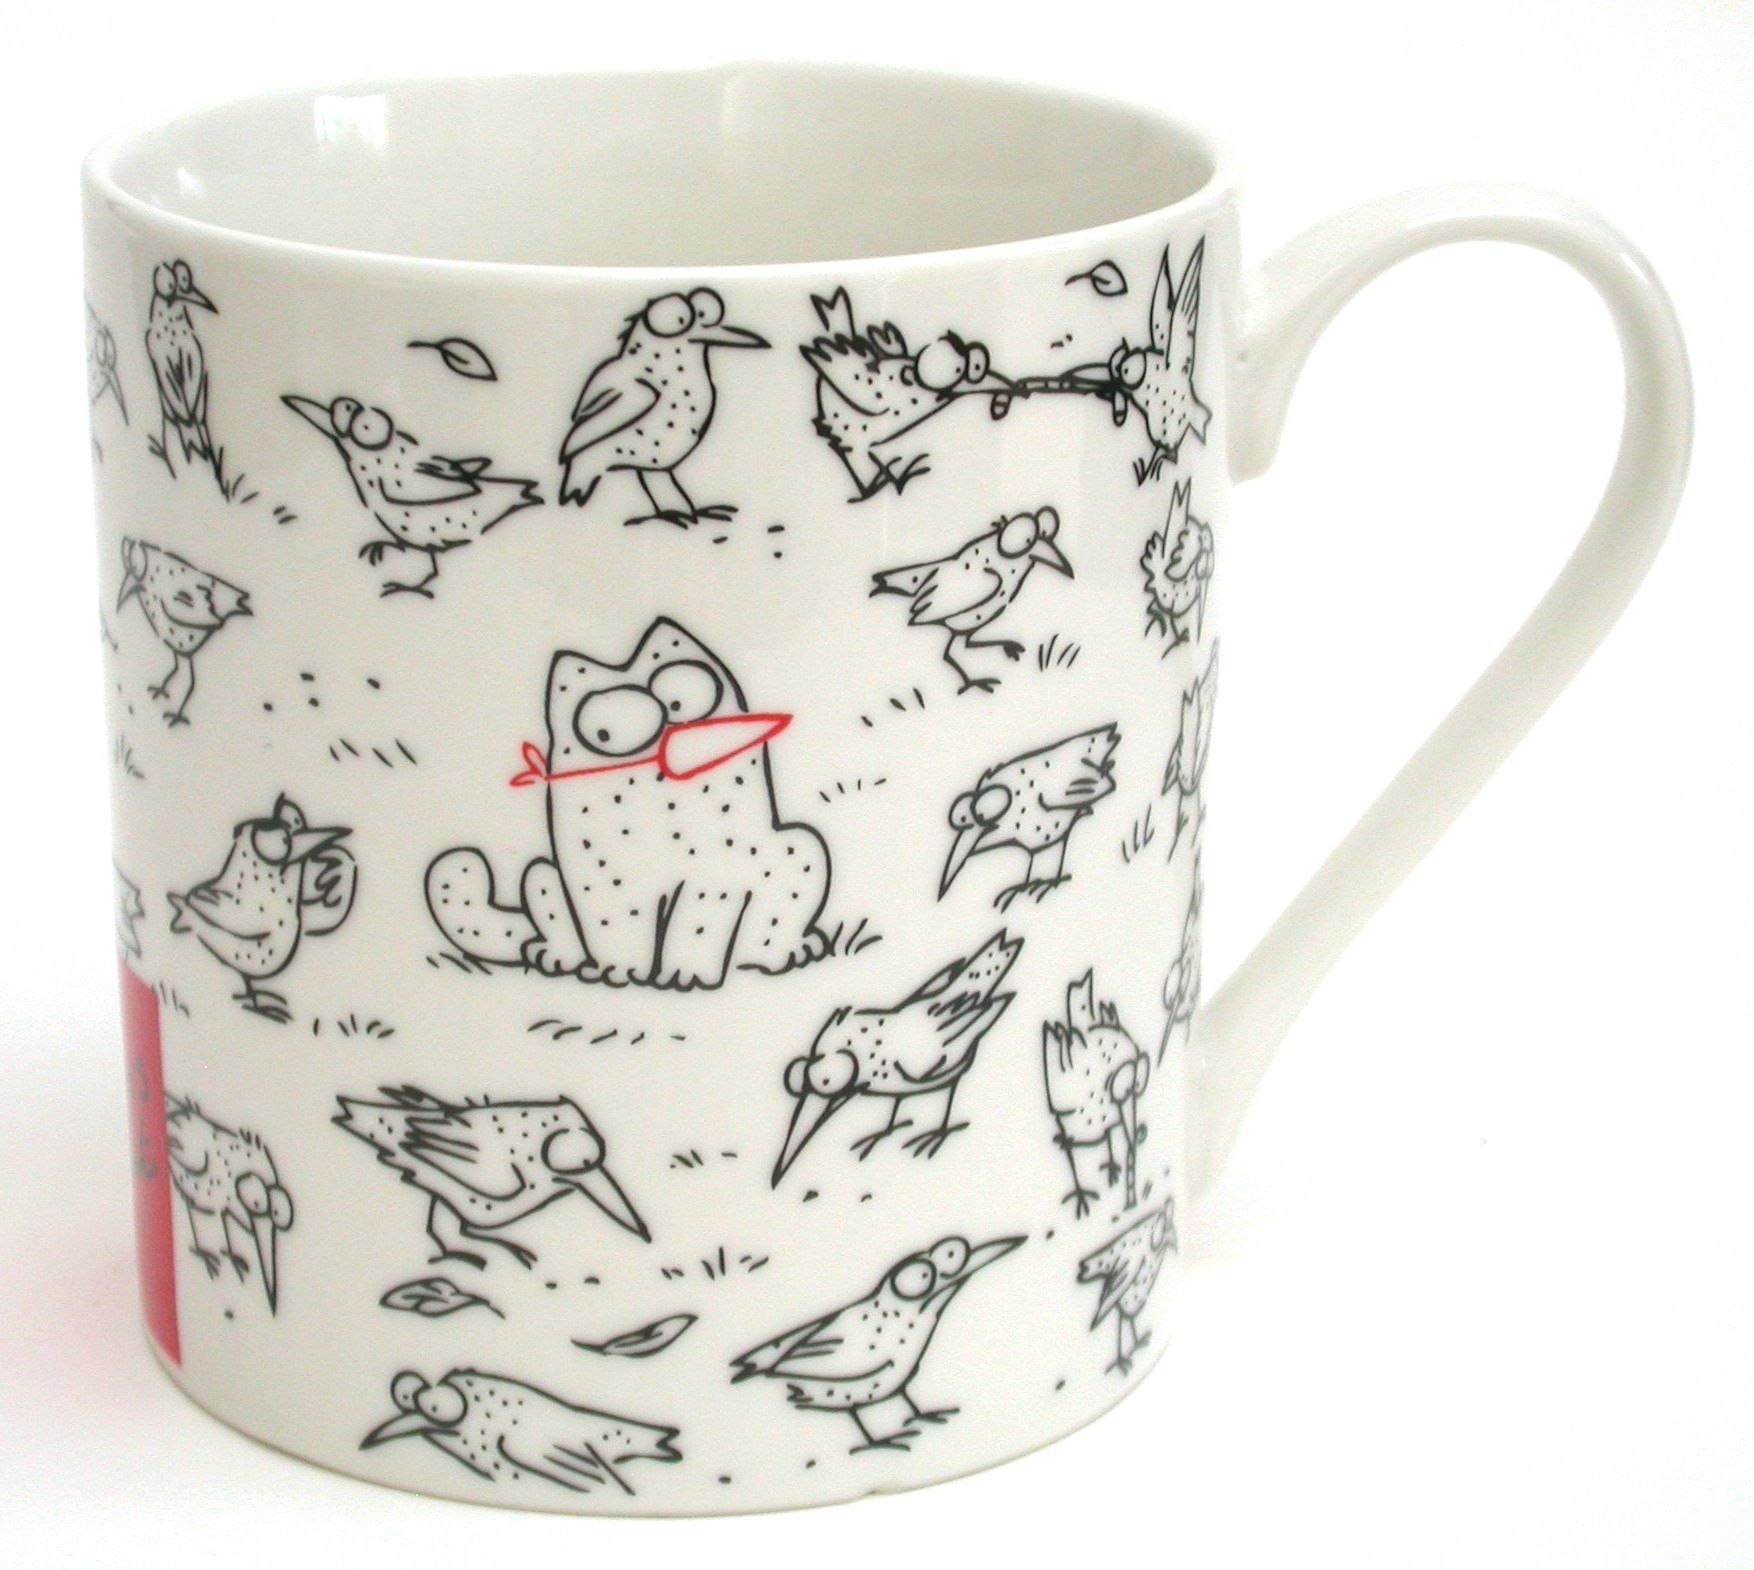 Simon's Cat BIRD Mug Mugs, Simons cat, Quirky gifts